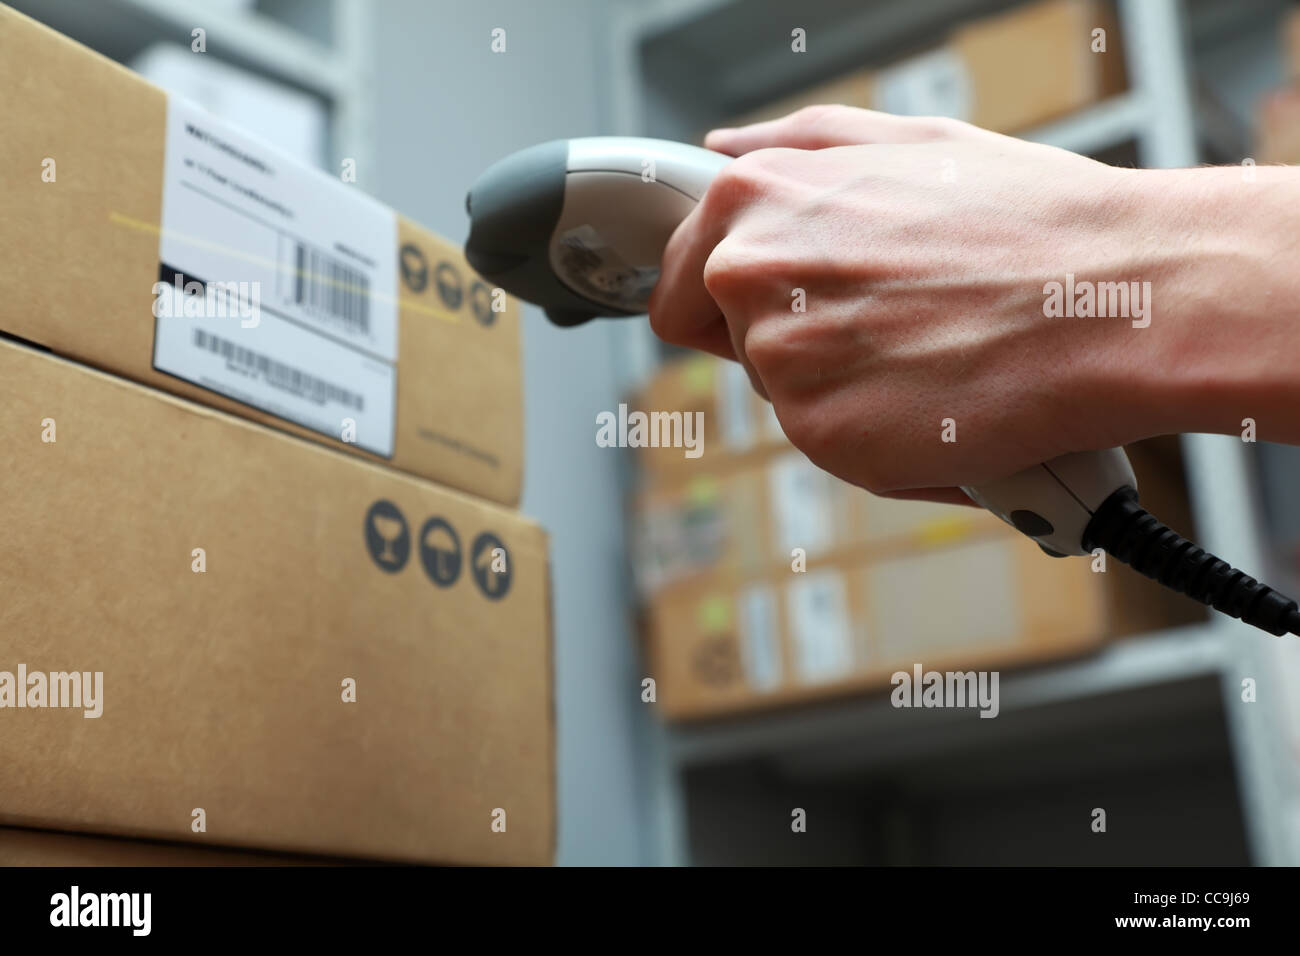 Warehouse works. Man hand hold barcode scanner. - Stock Image